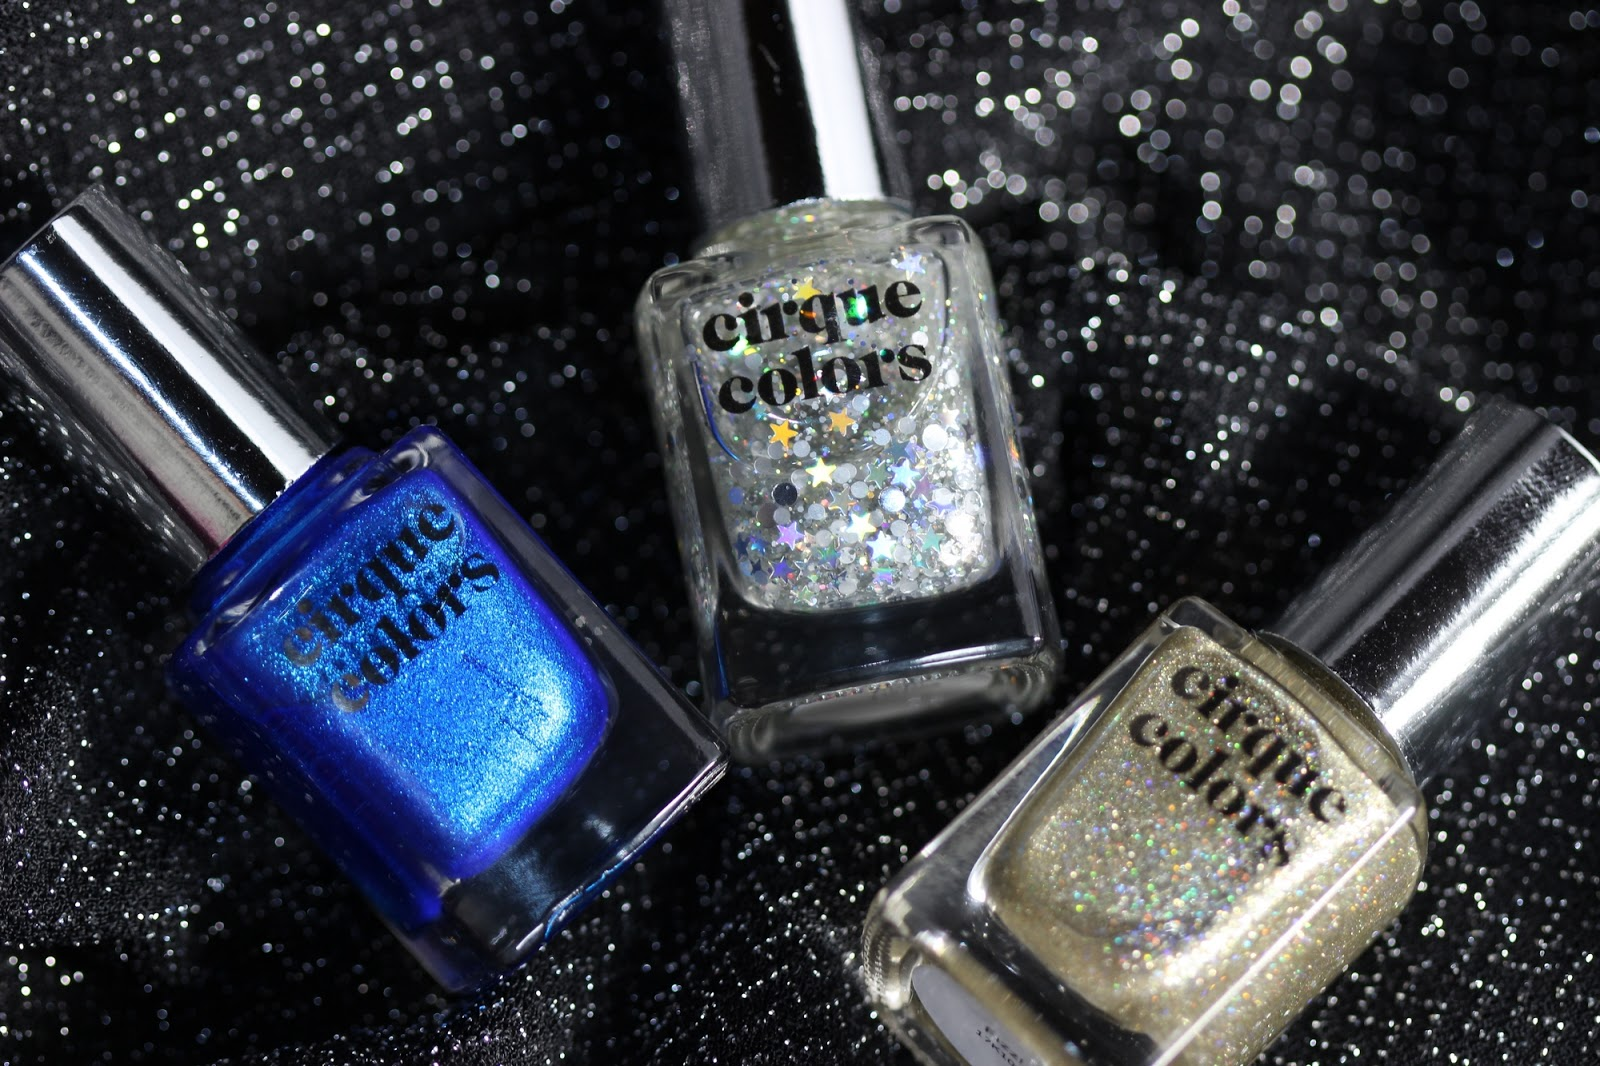 Cirque Colors | Live.Love.Polish New Years exclusive trio ...